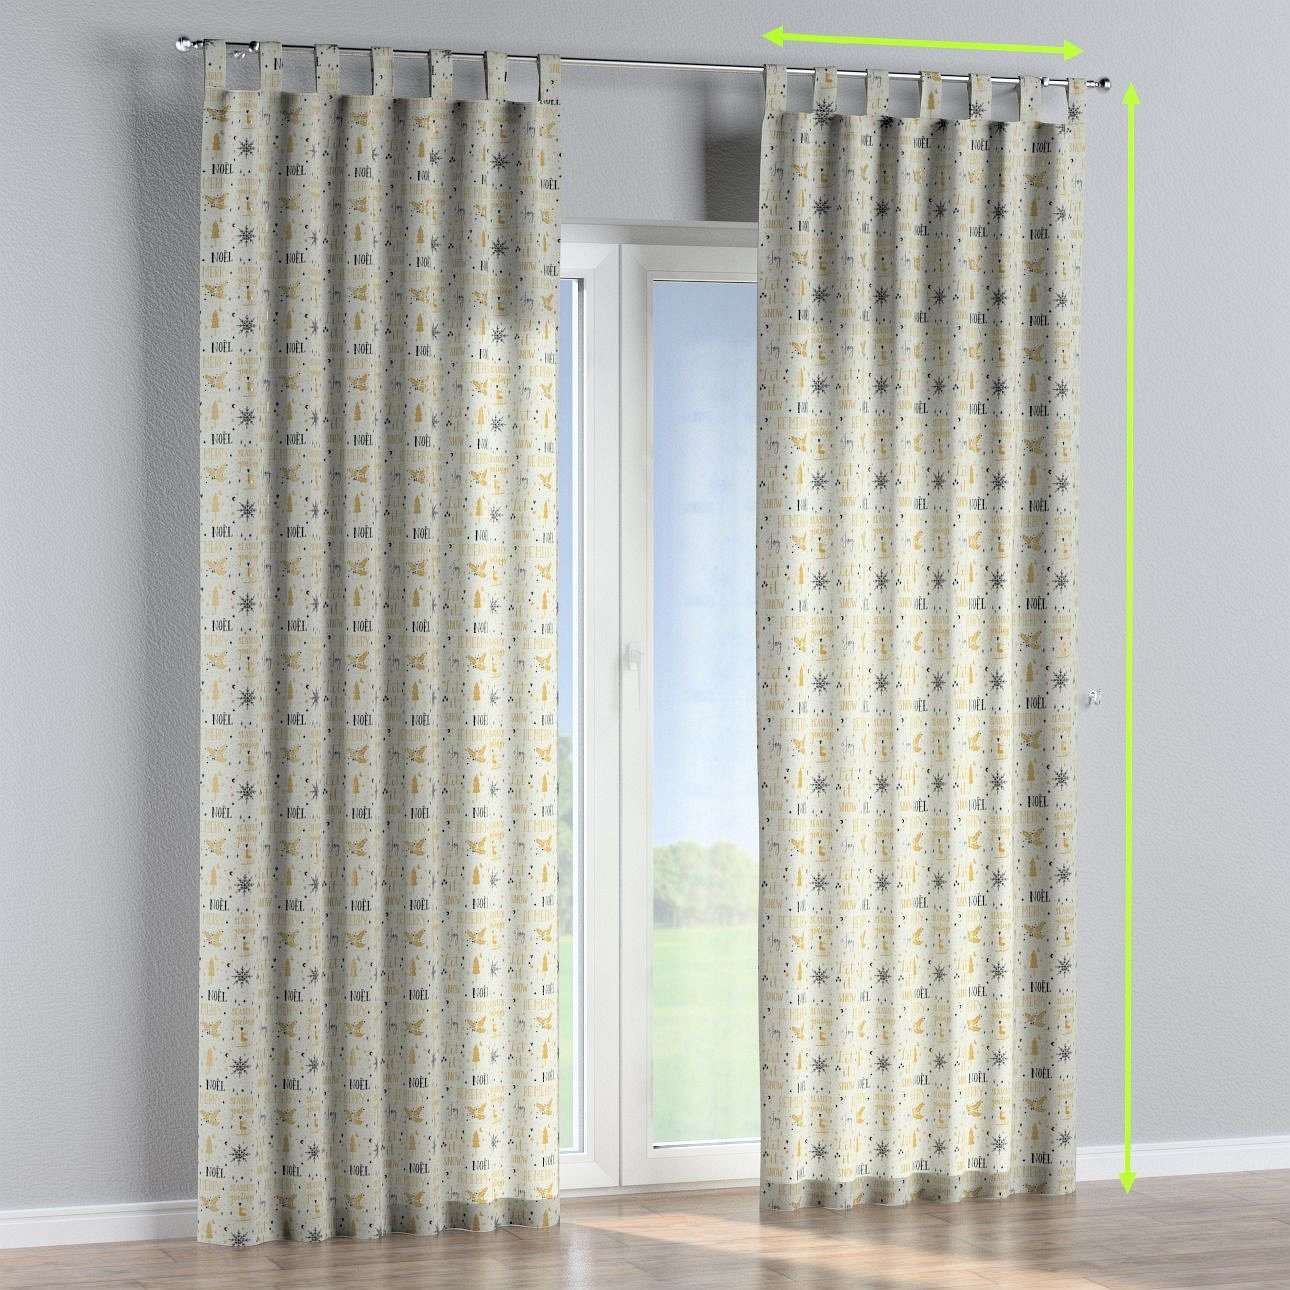 Tab top curtains in collection Christmas, fabric: 629-34